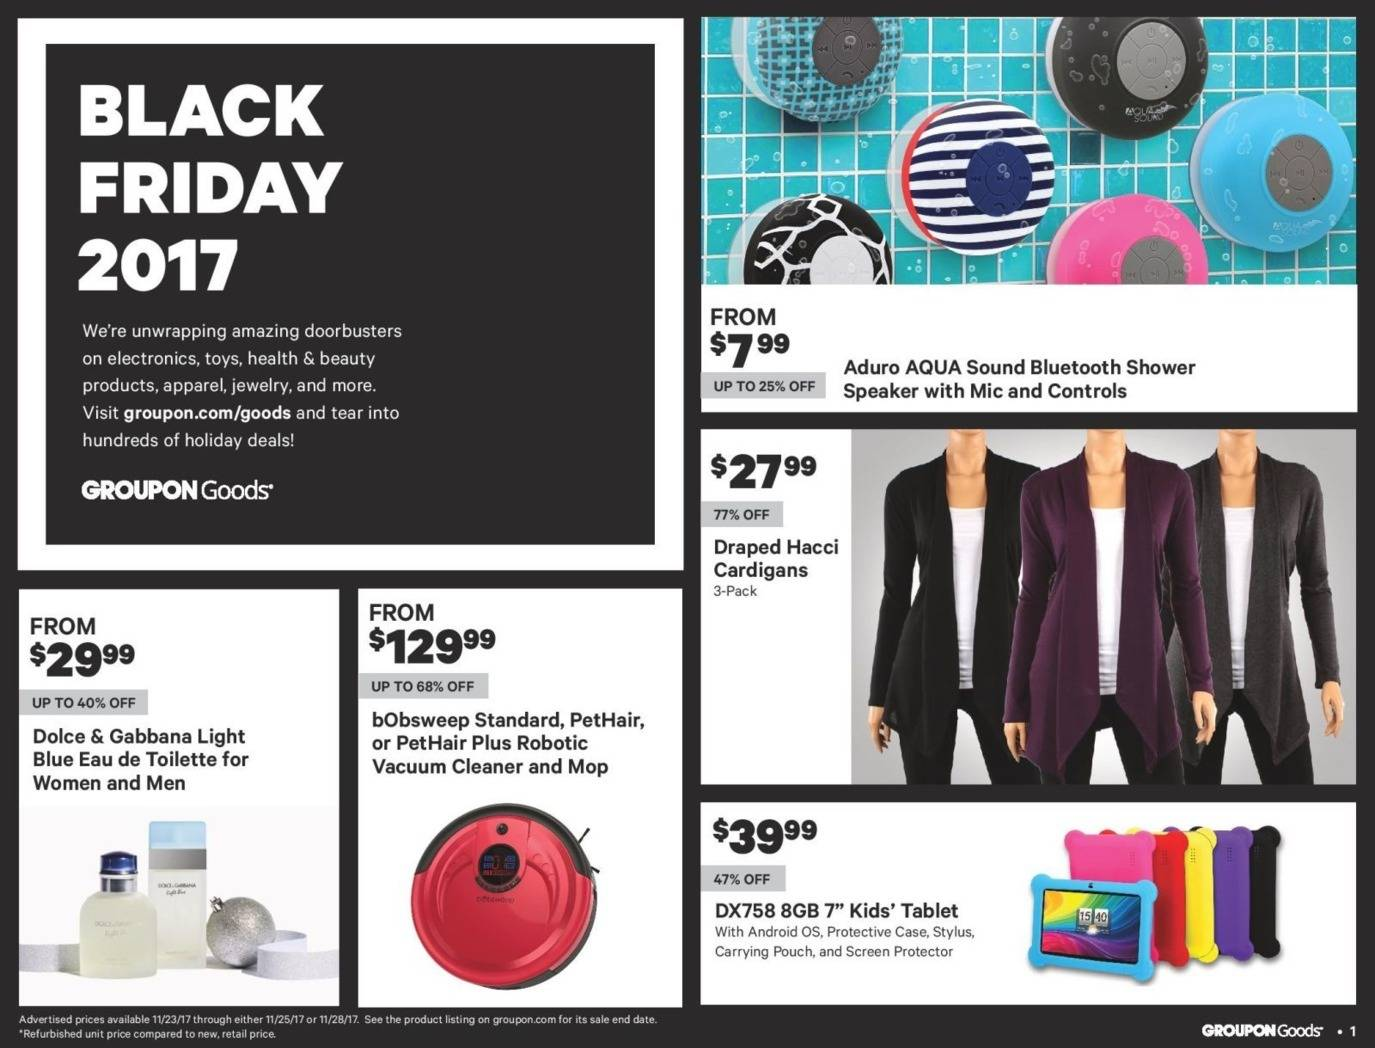 Groupon Goods 2017 Black Friday Ad Page 1